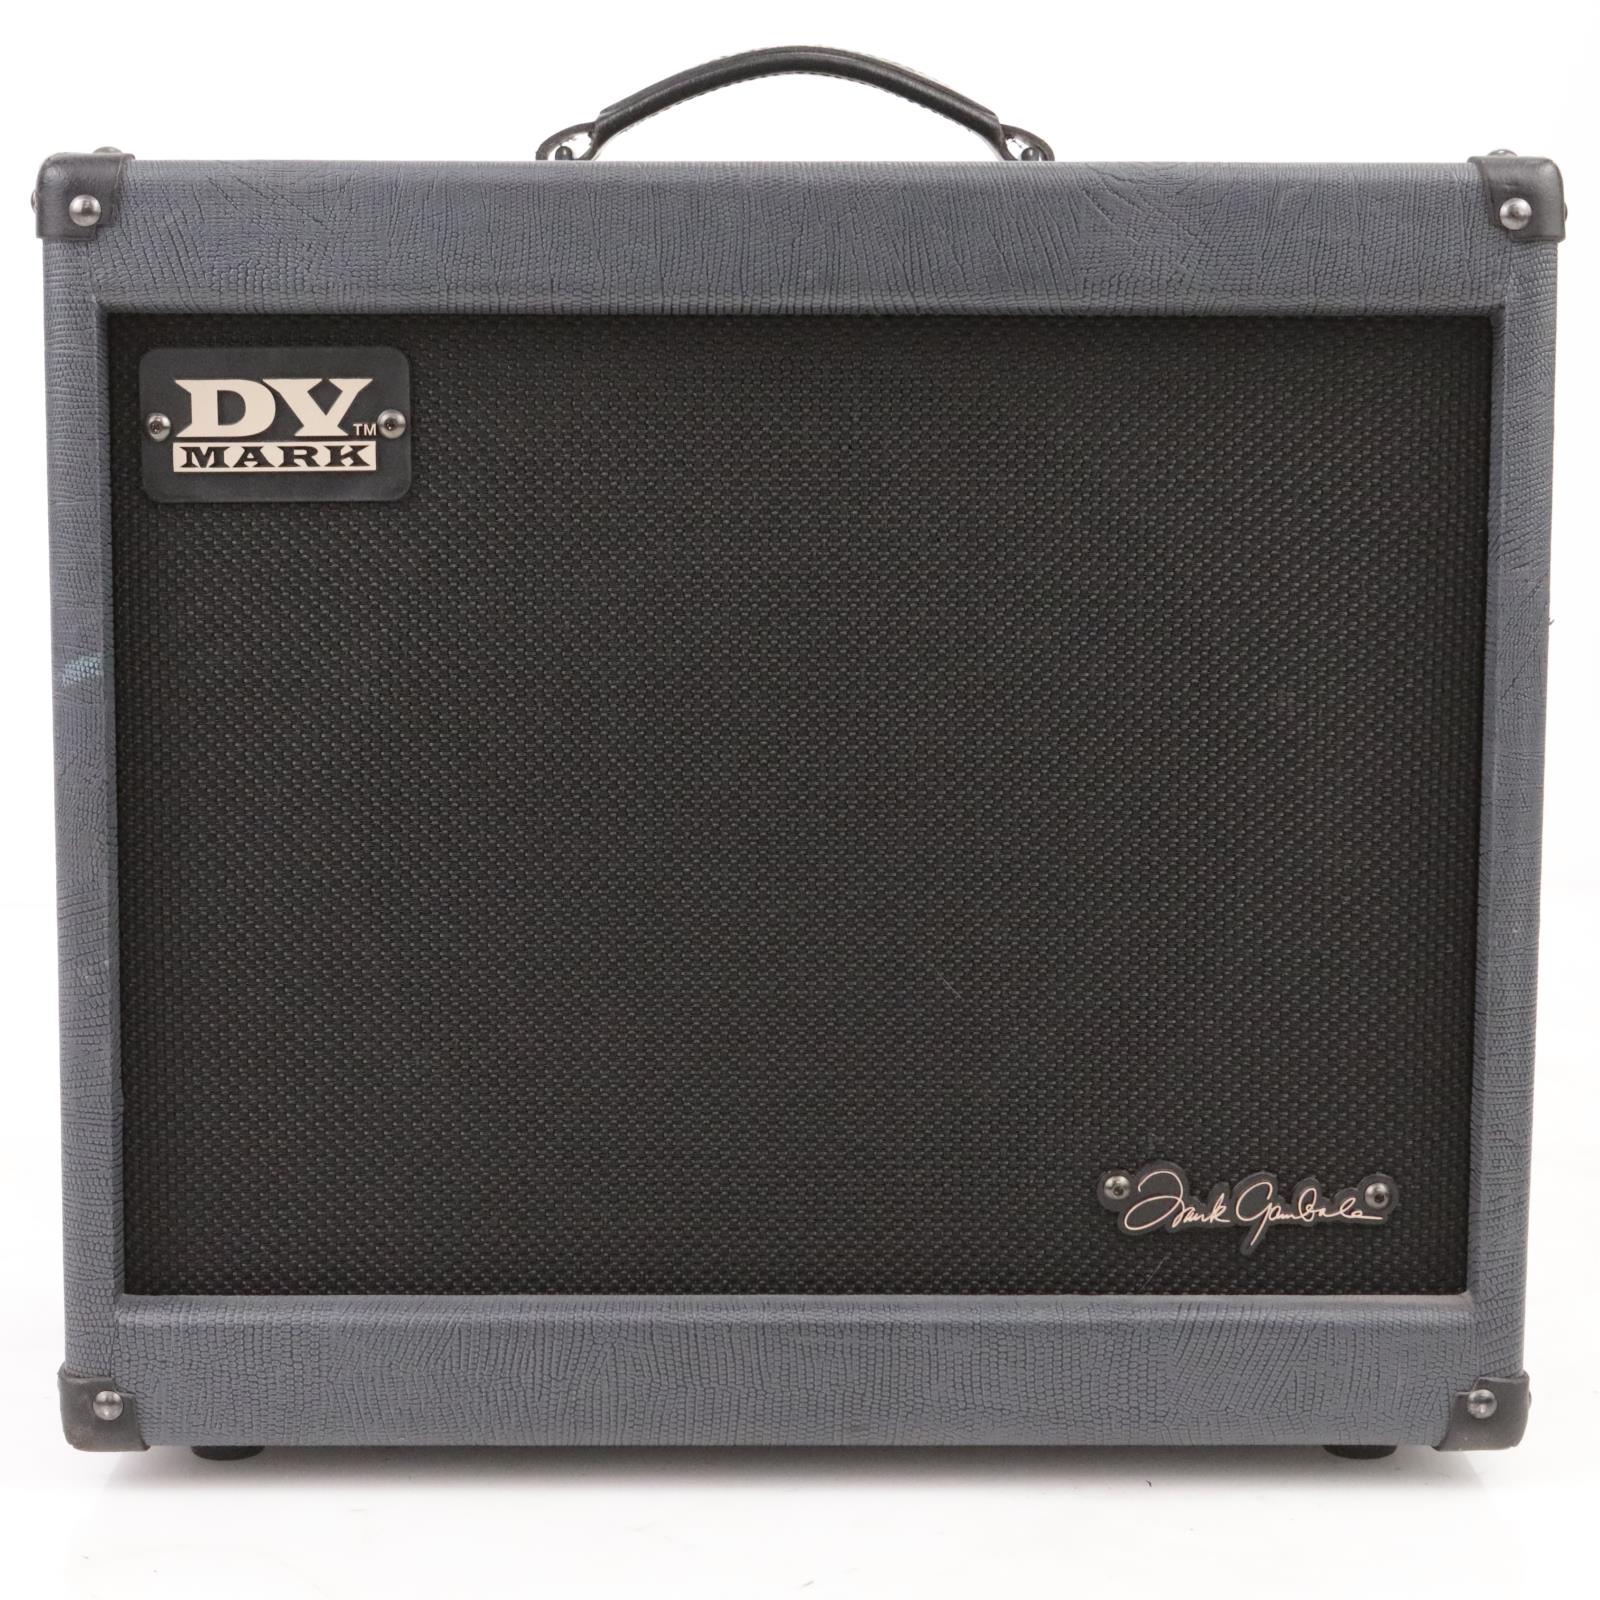 DV Mark Combo 112 Guitar Amplifier Amp Owned By Frank Gambale #39370